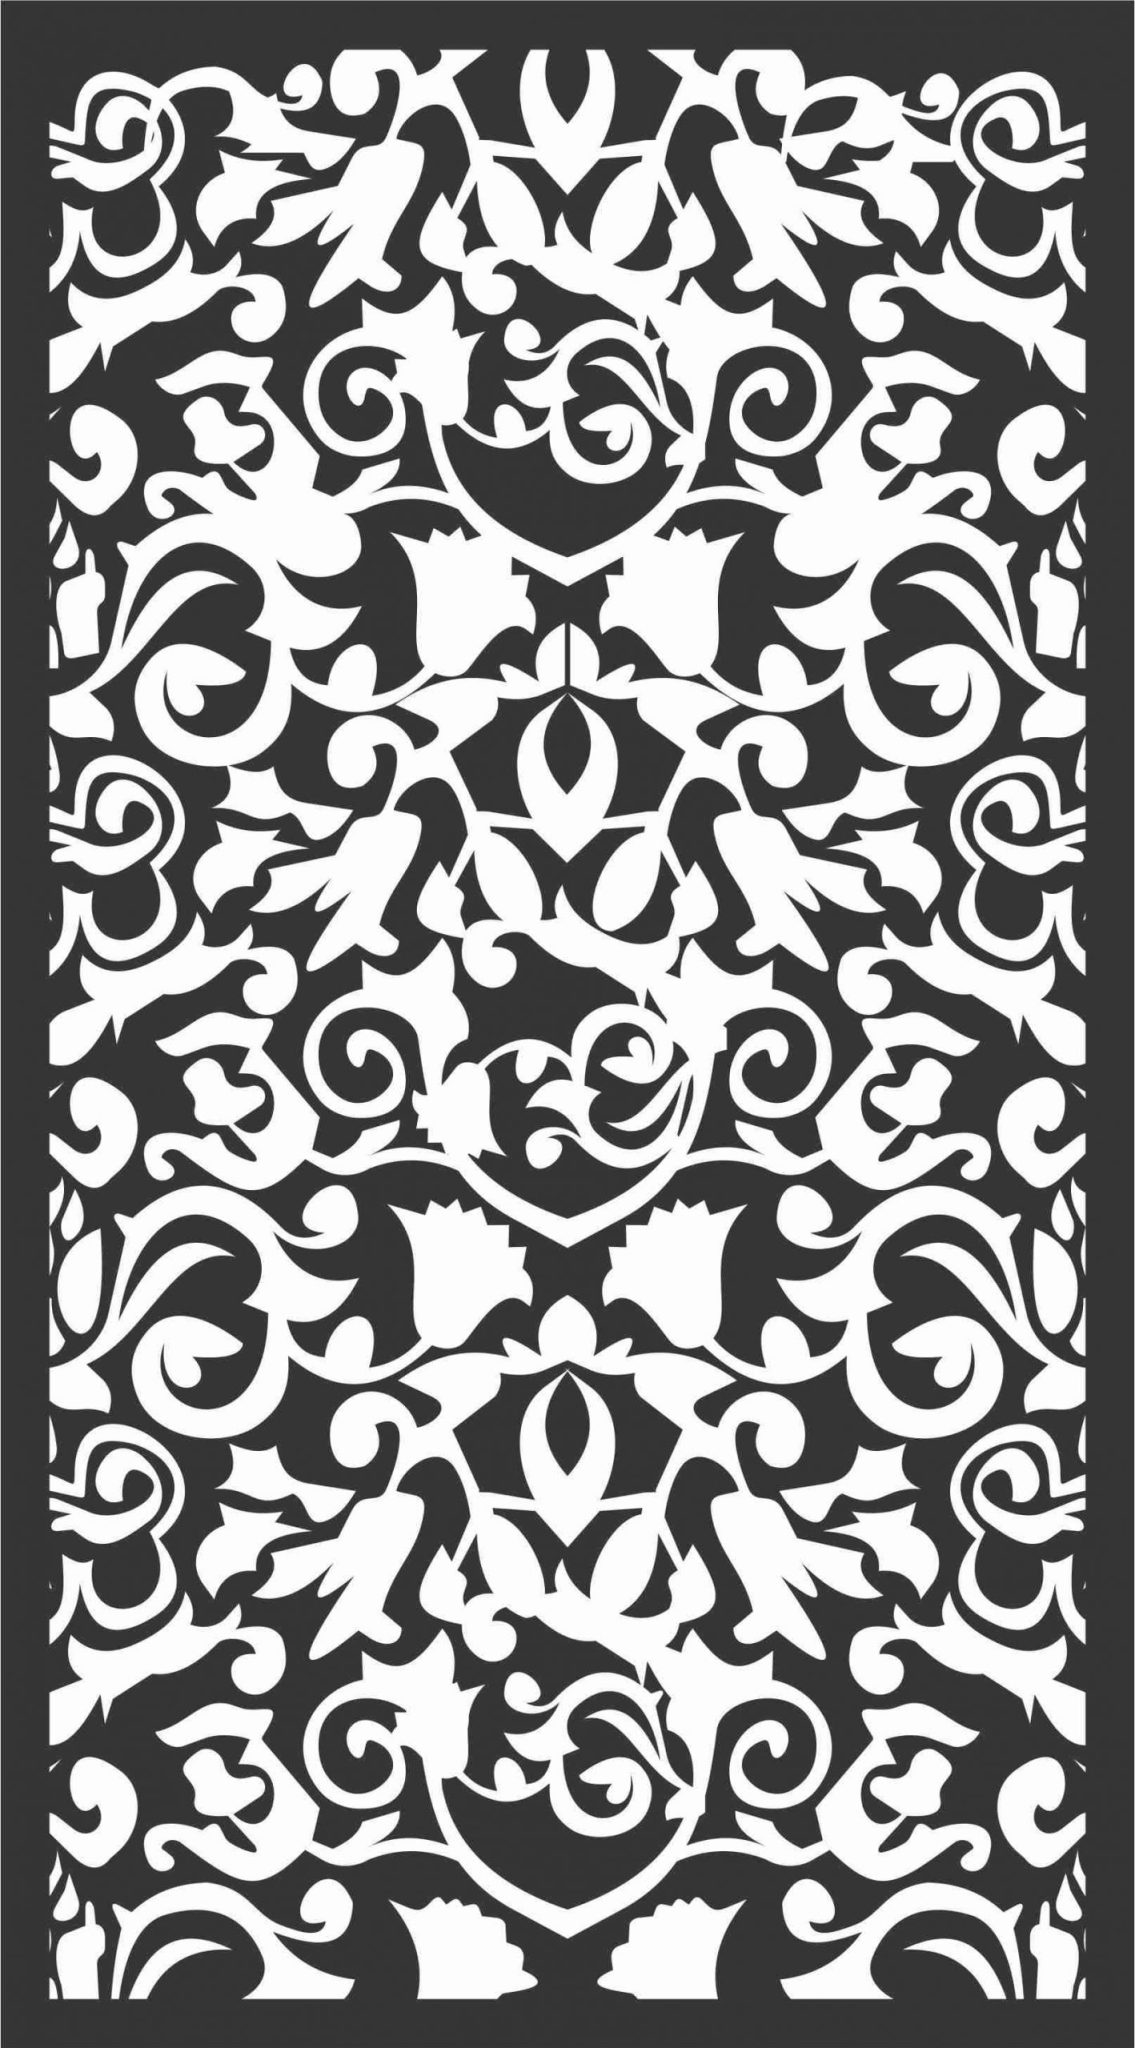 Floral Screen Patterns Design 25 Free DXF File